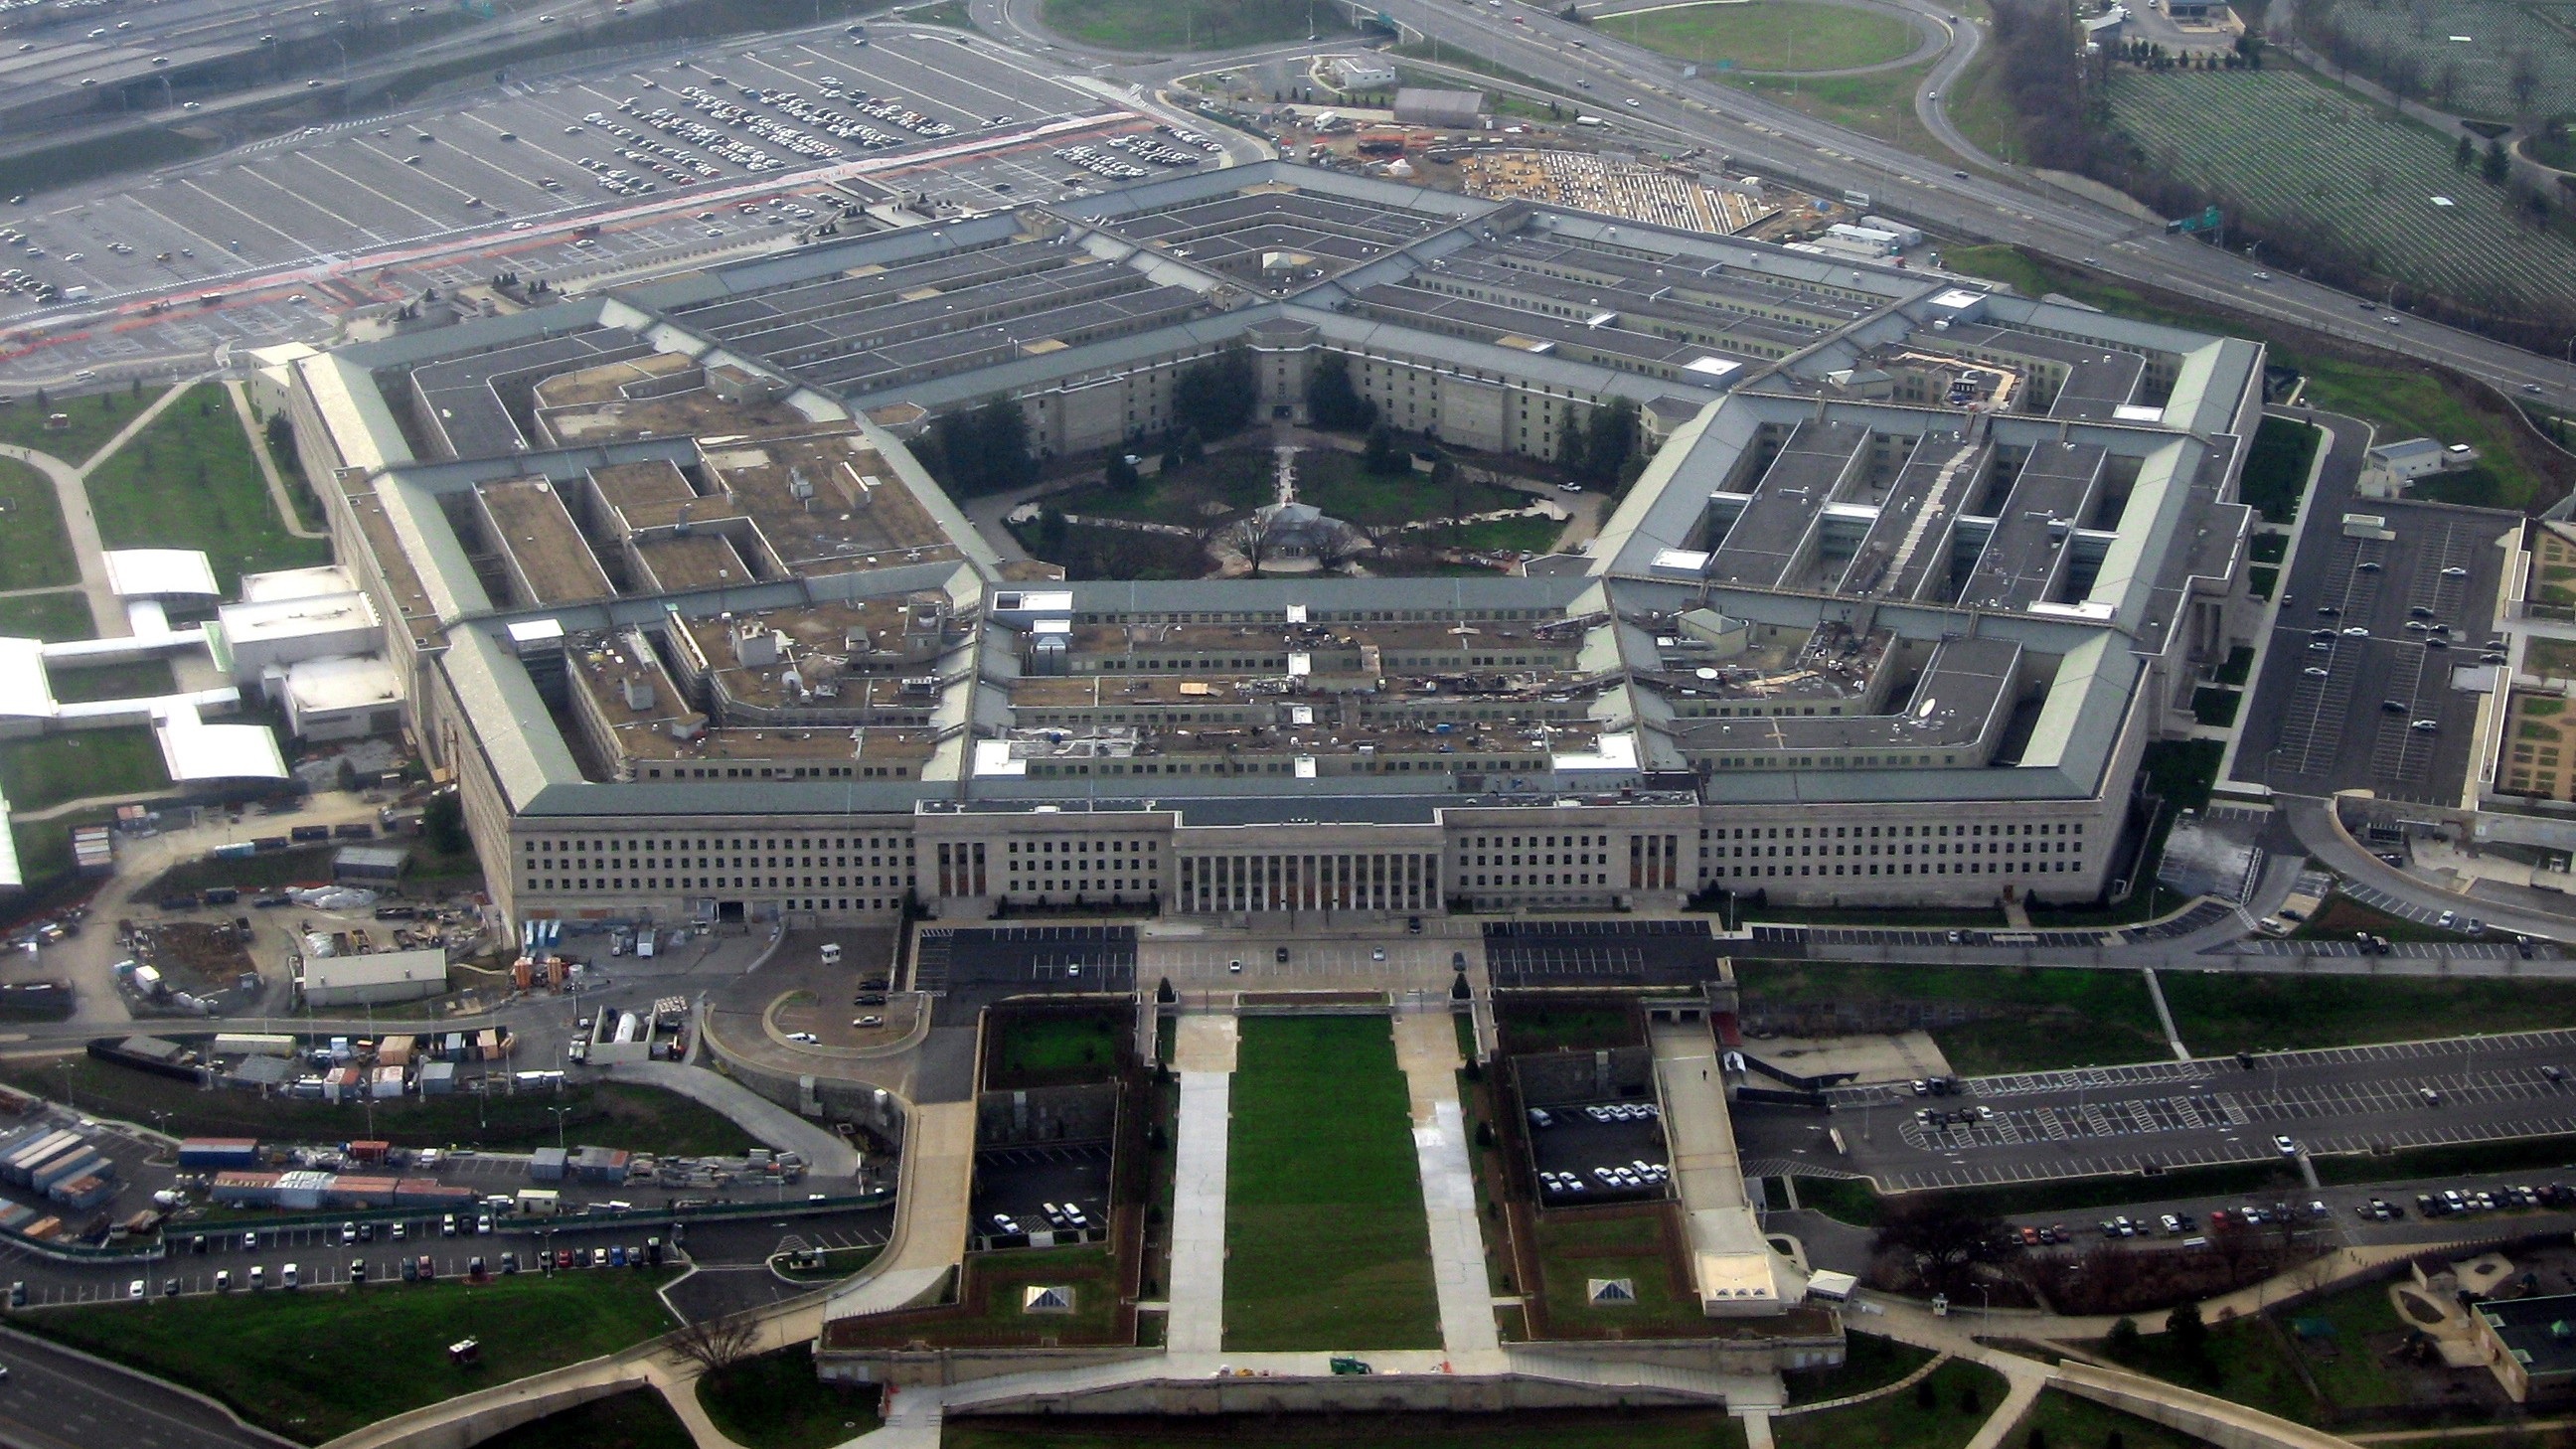 The Bleak Science Bankrolled by the Pentagon